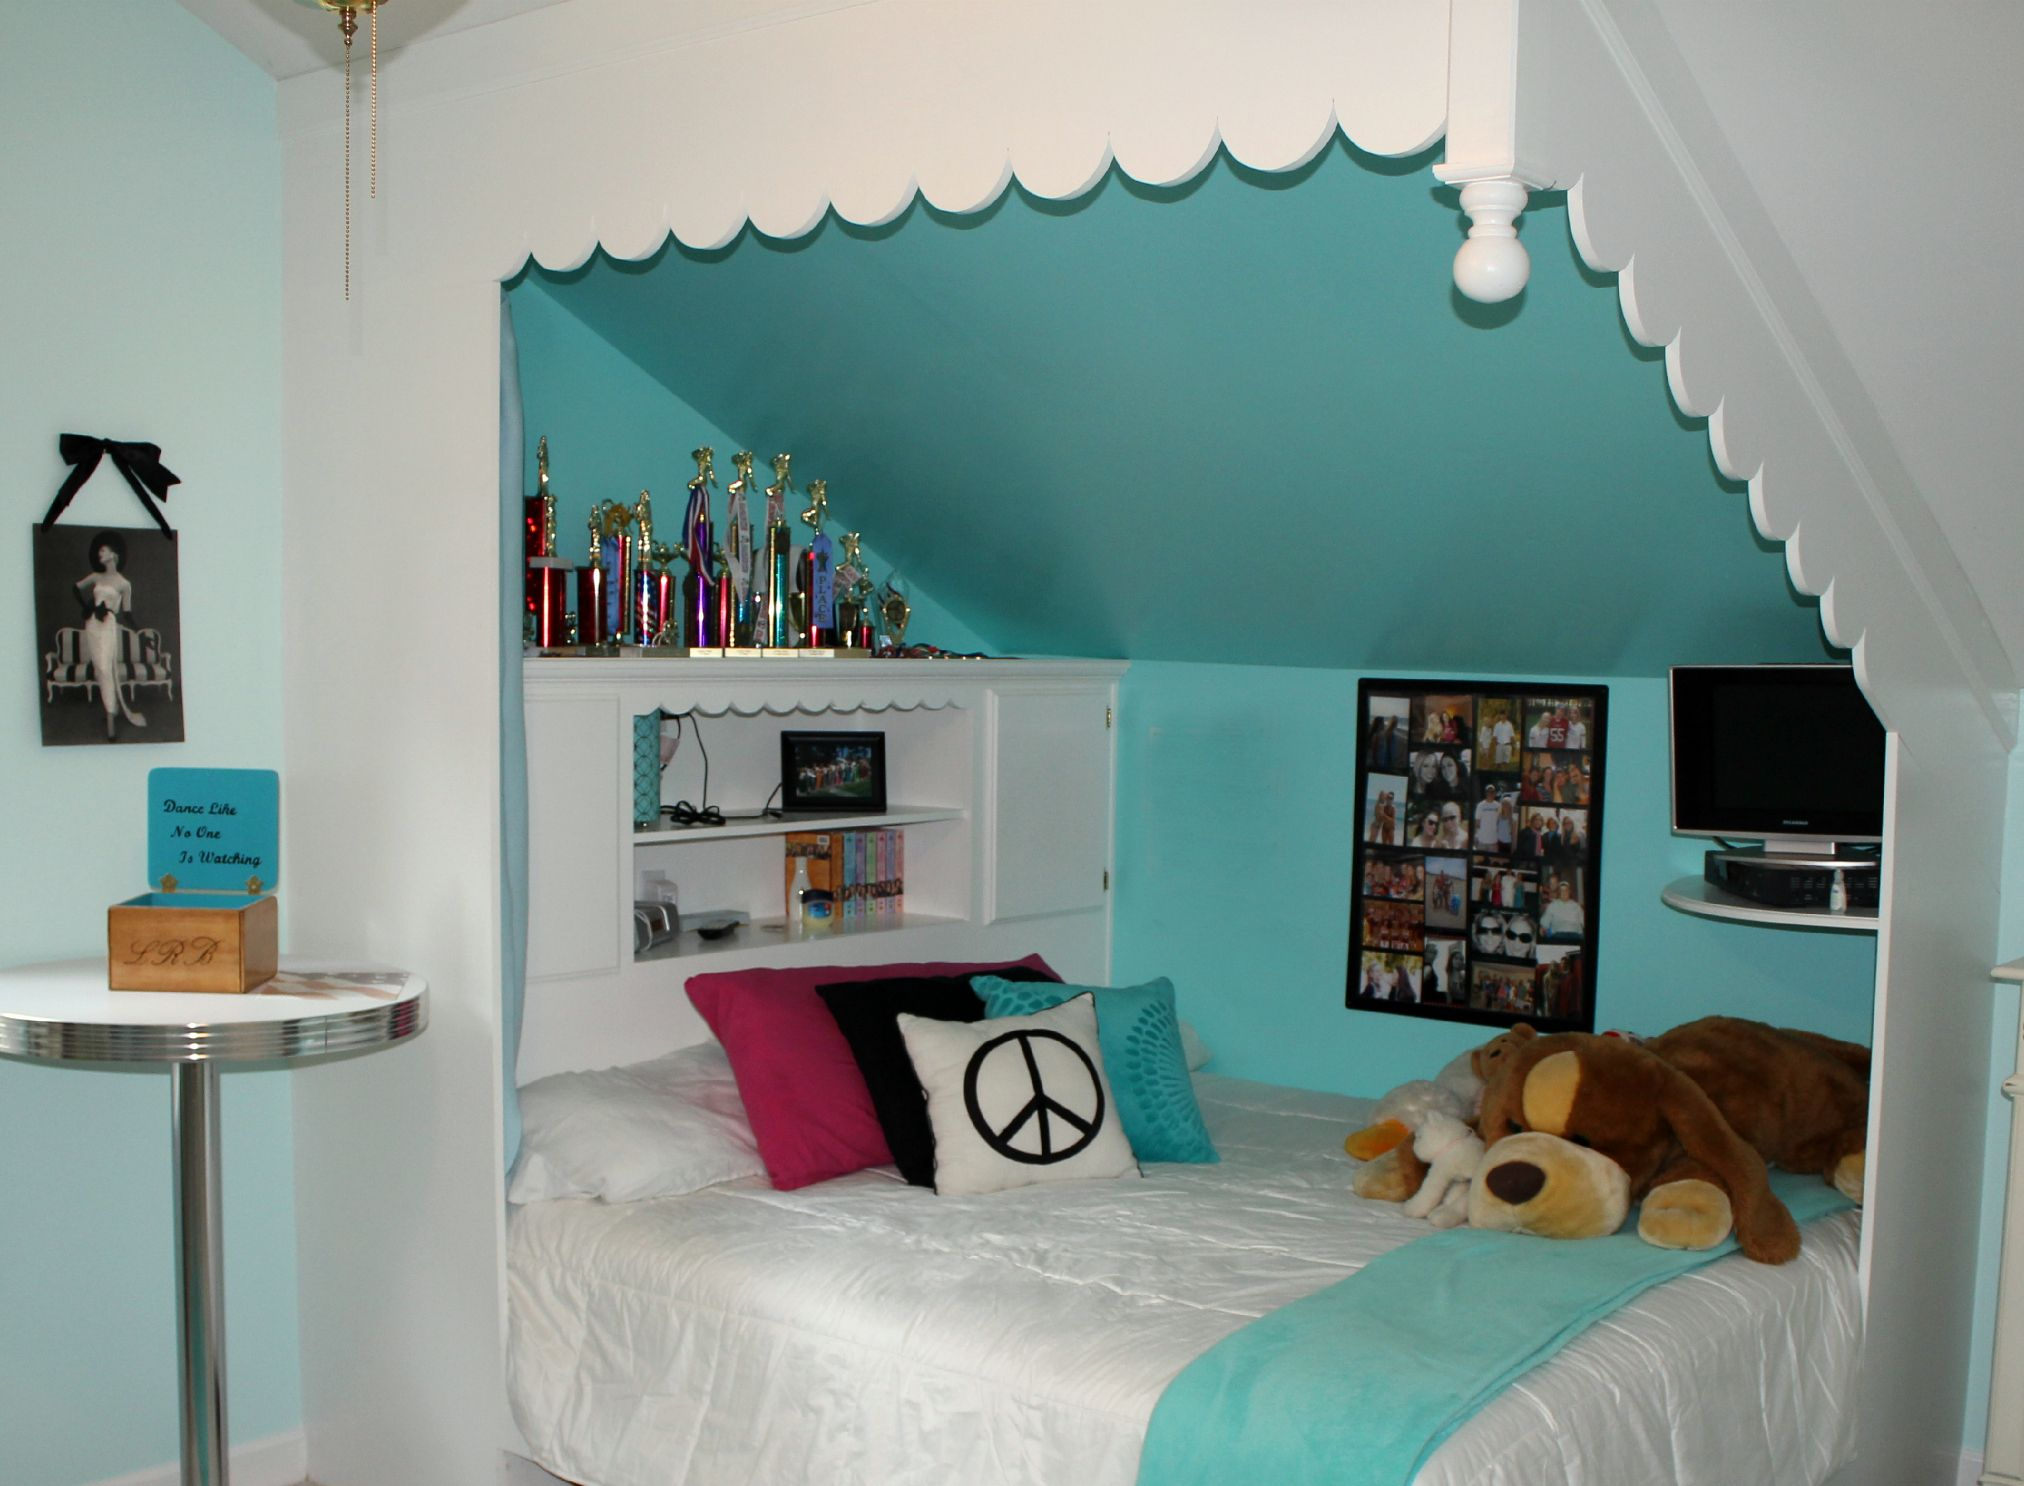 17 best ideas about slanted wall bedroom on pinterest | slanted